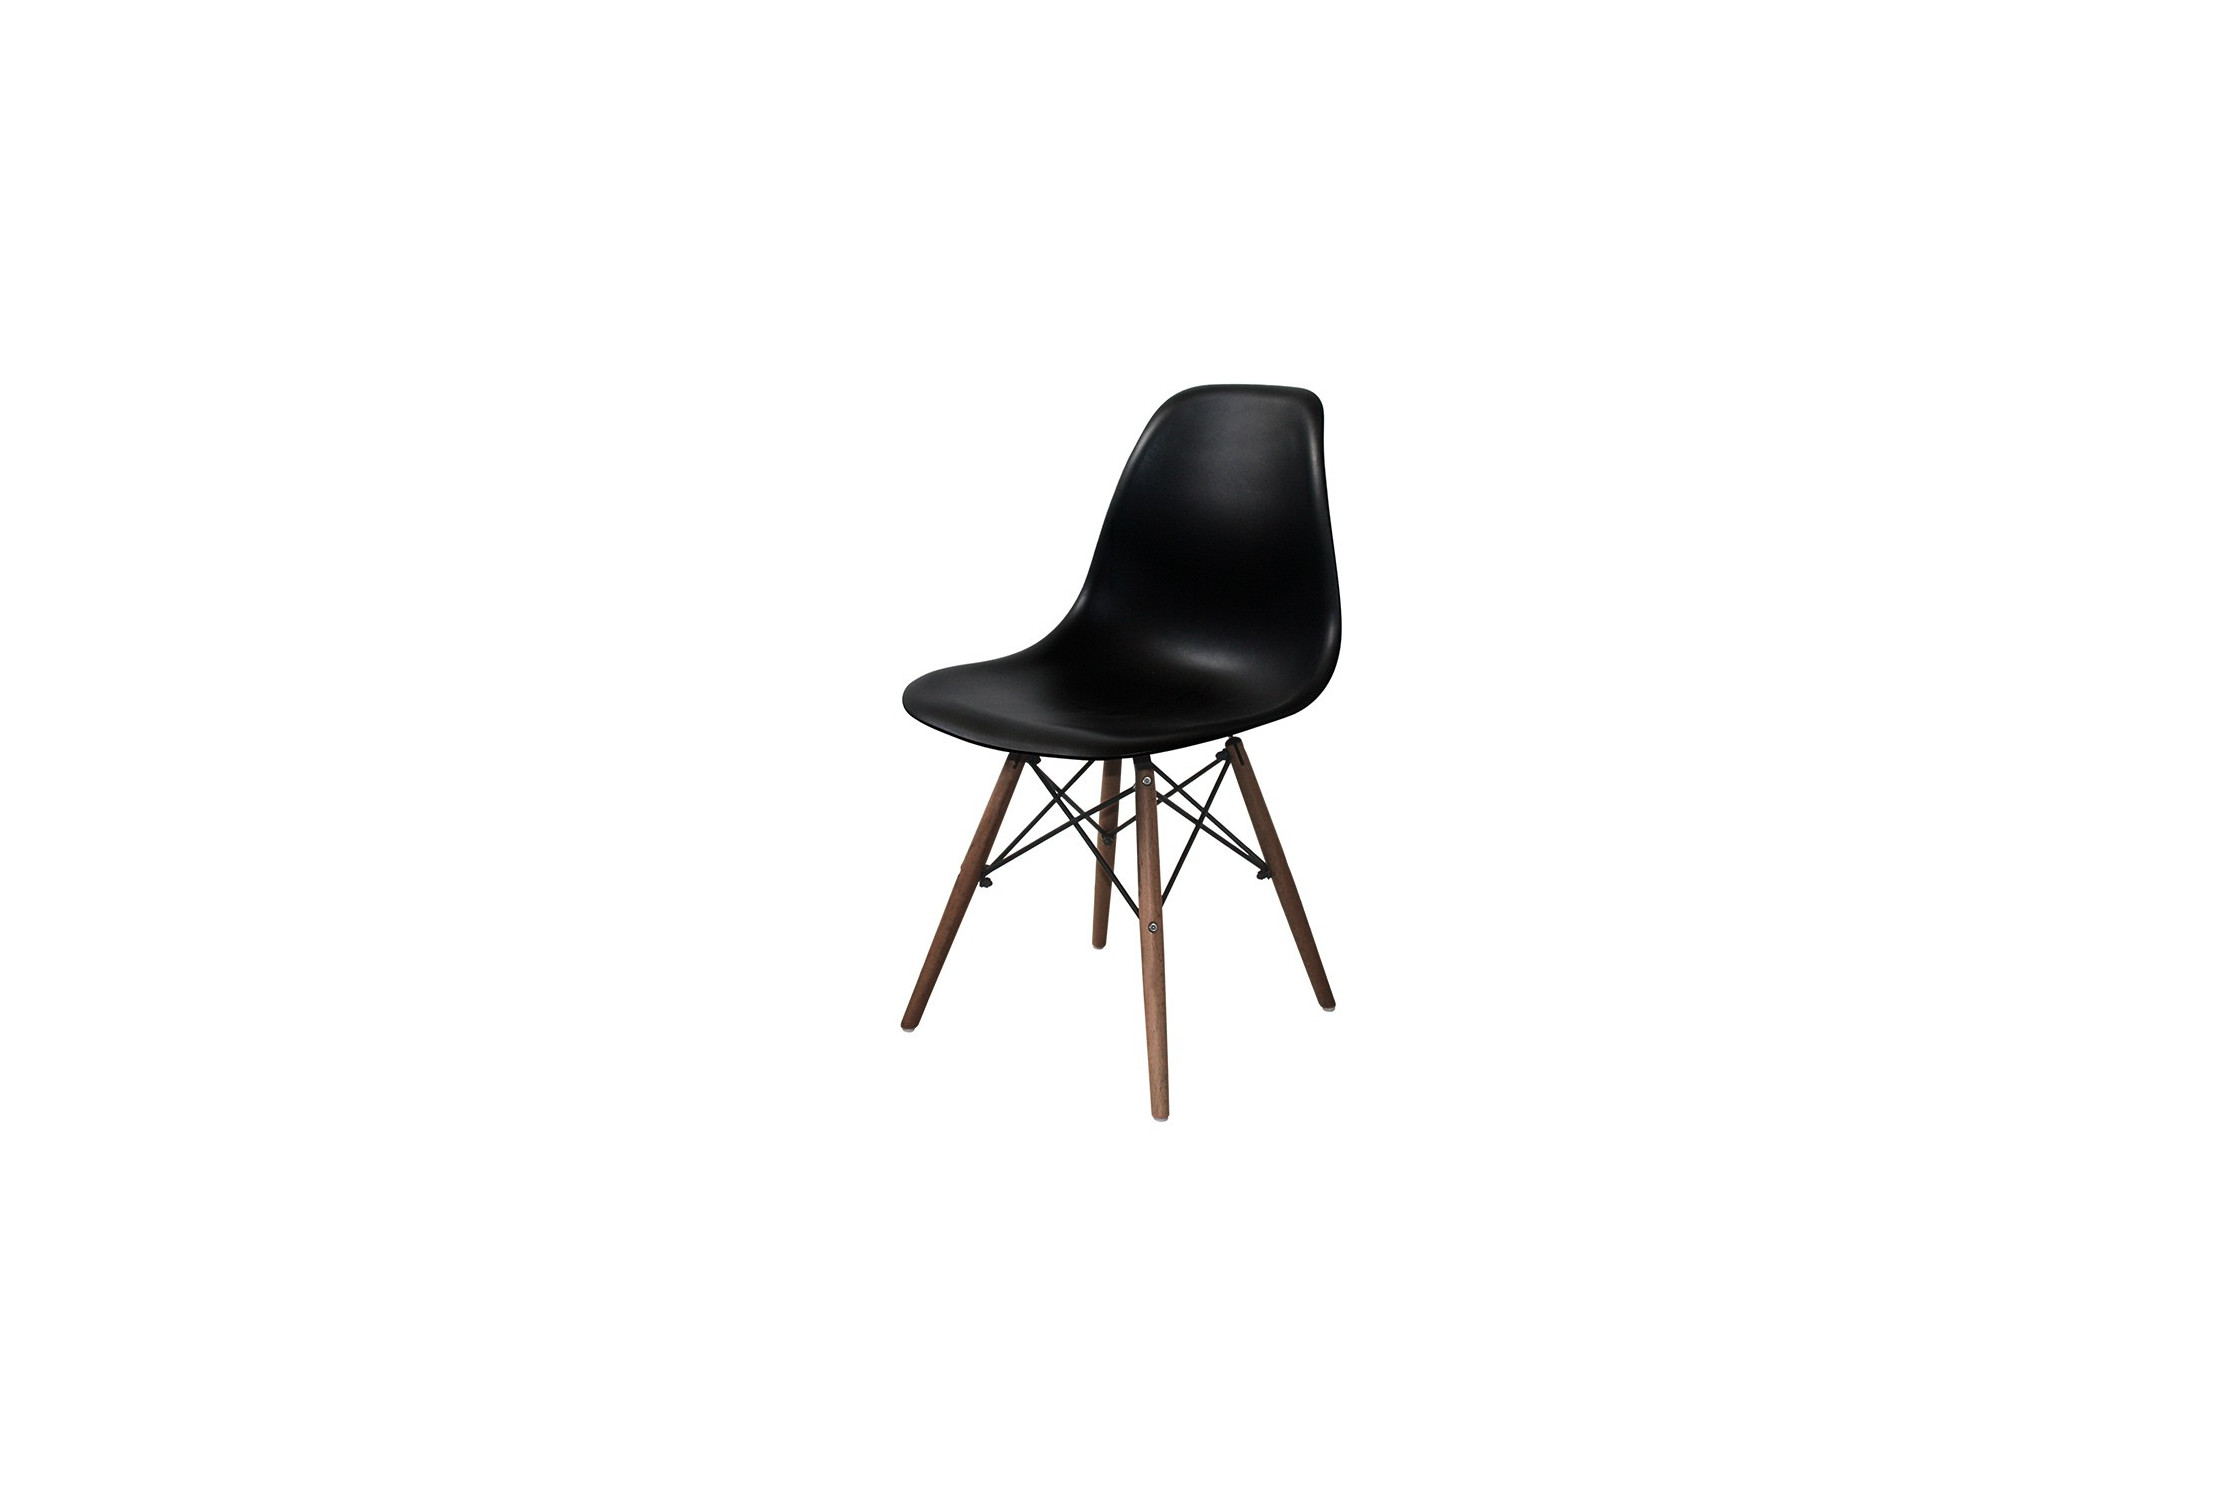 SILLA TOWER WOOD NEGRA PATAS WENGUÉ EXTRA QUALITY